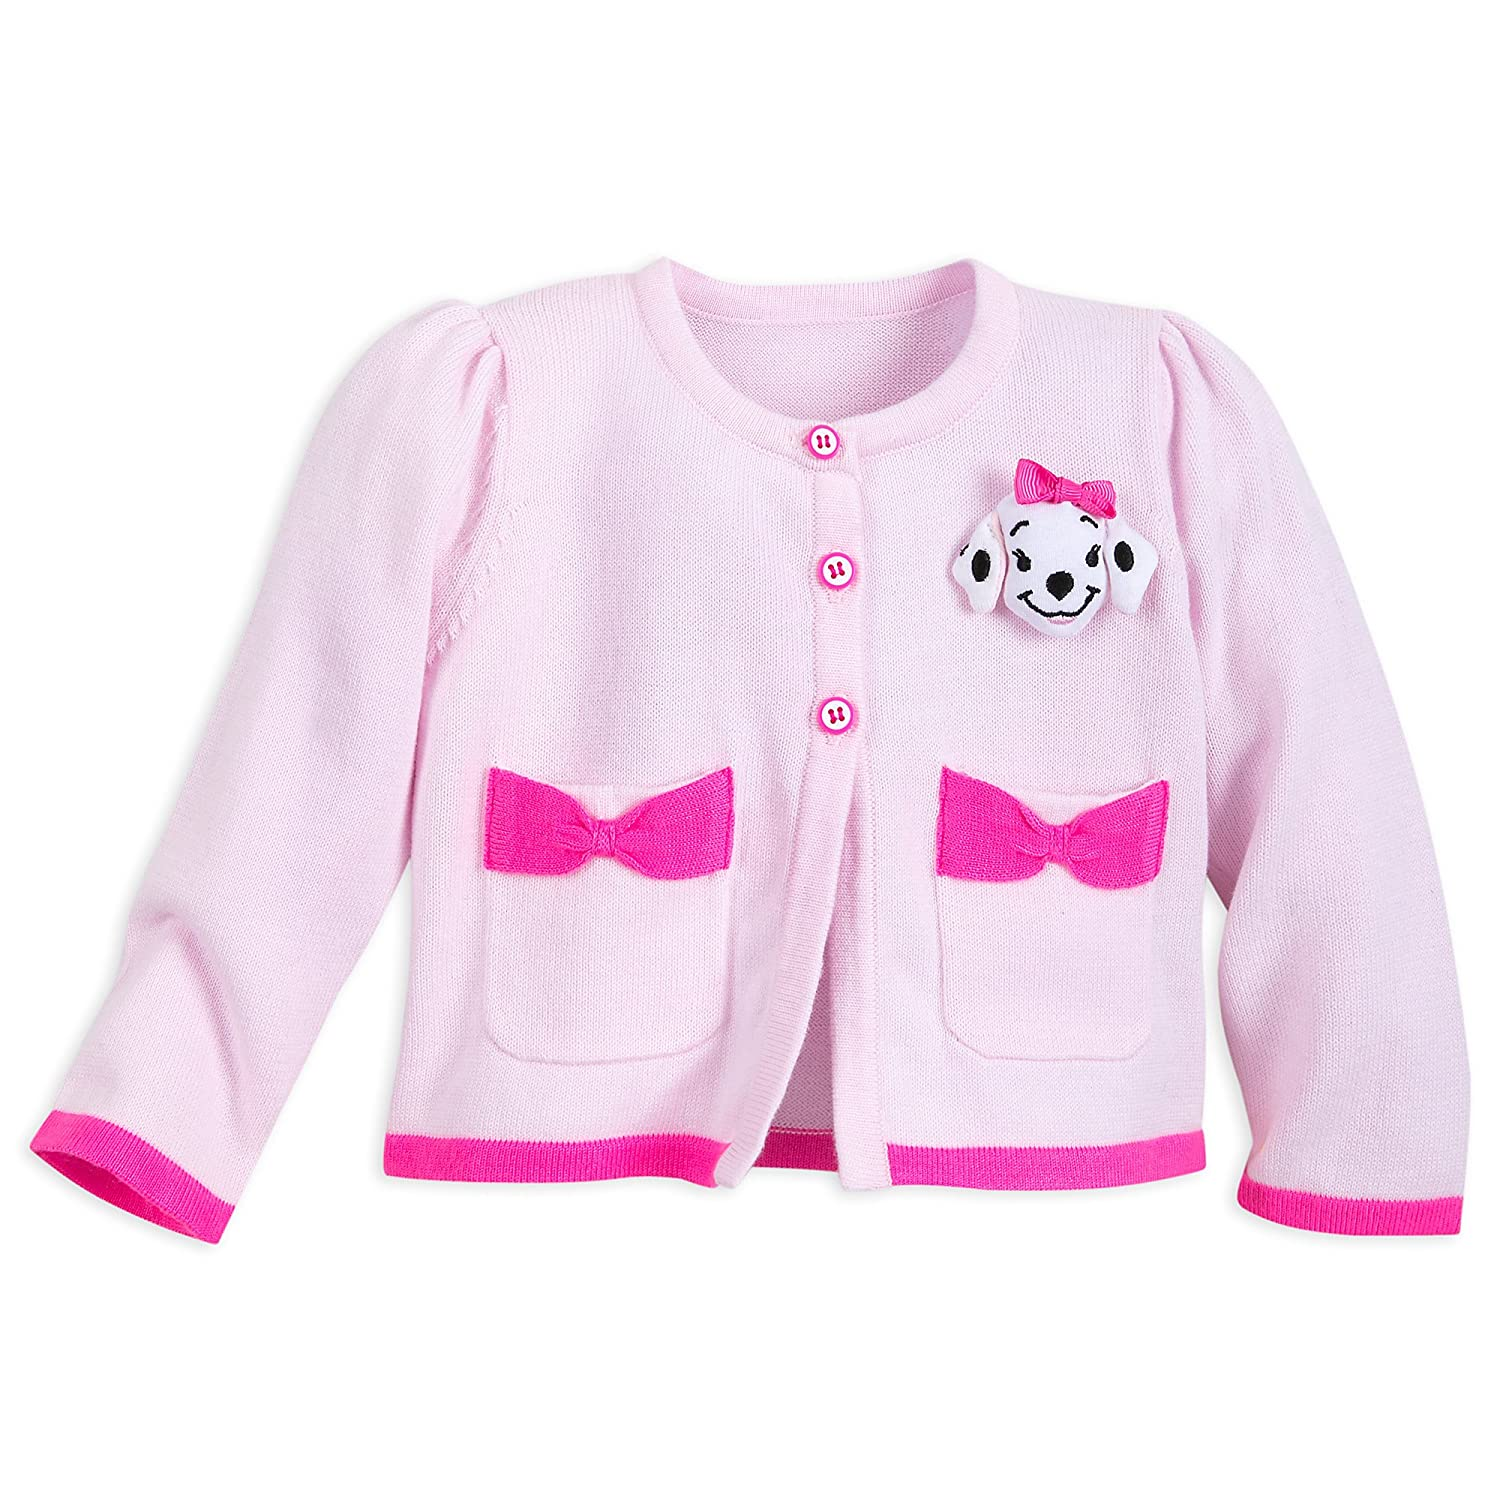 Disney Penny Sweater for Baby 101 Dalmatians